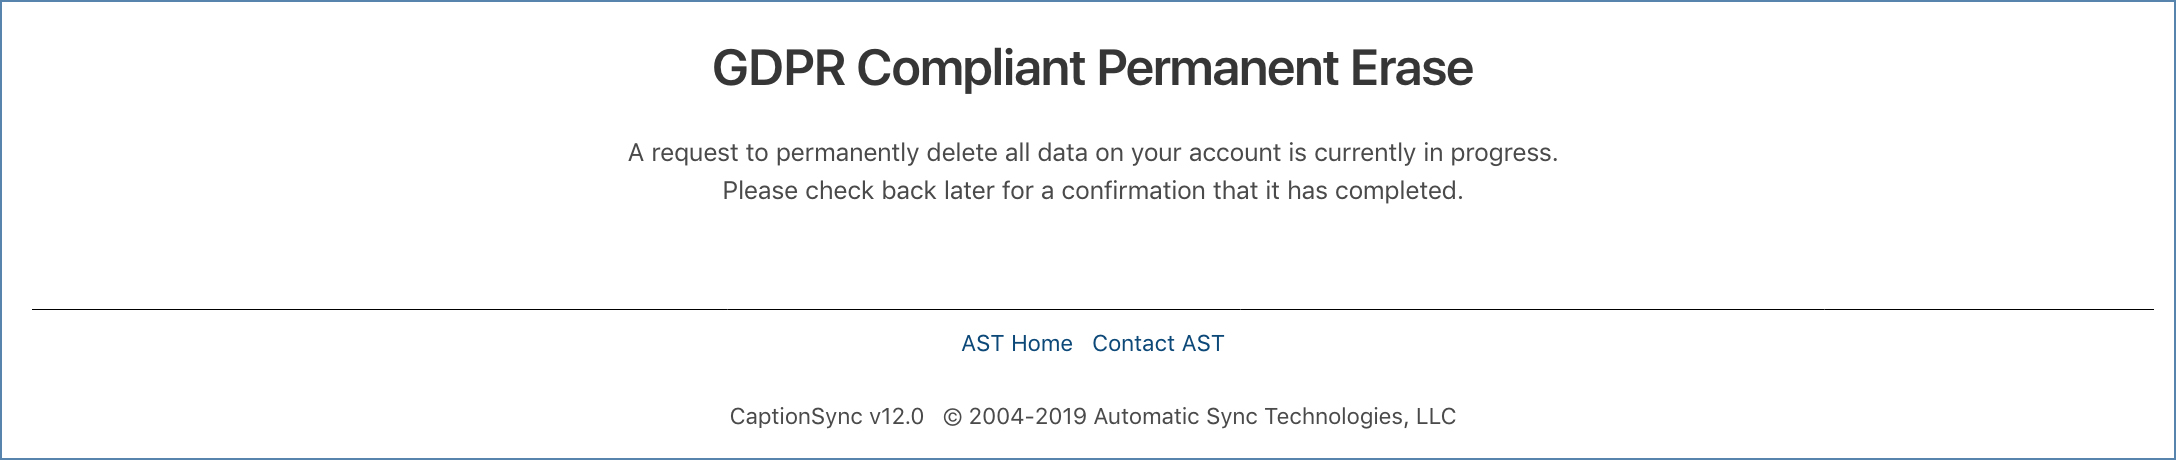 Image of the GDPR Compliant Permanent Erase in progress page